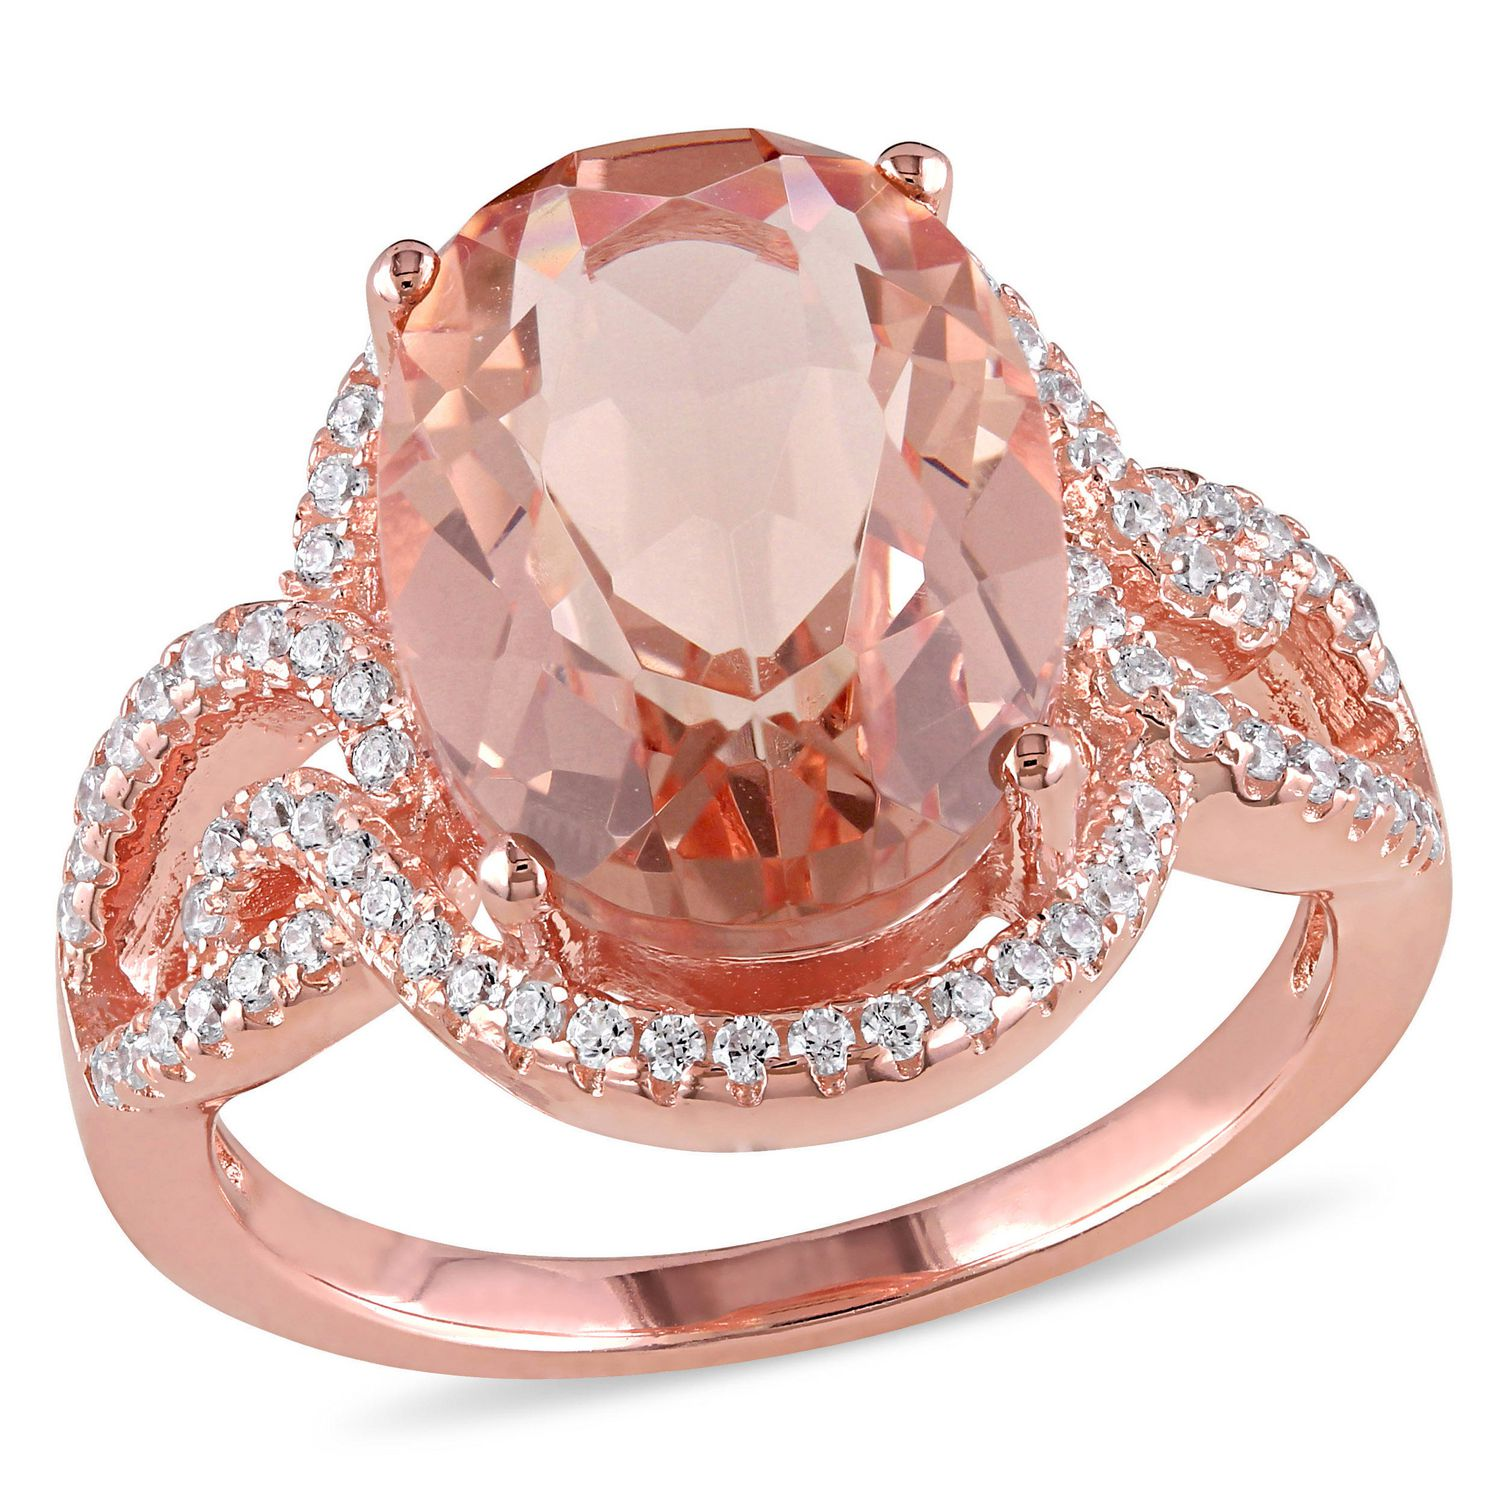 Tangelo 5.62 Carat T.G.W. Simulated Morganite and Cubic Zirconia ...